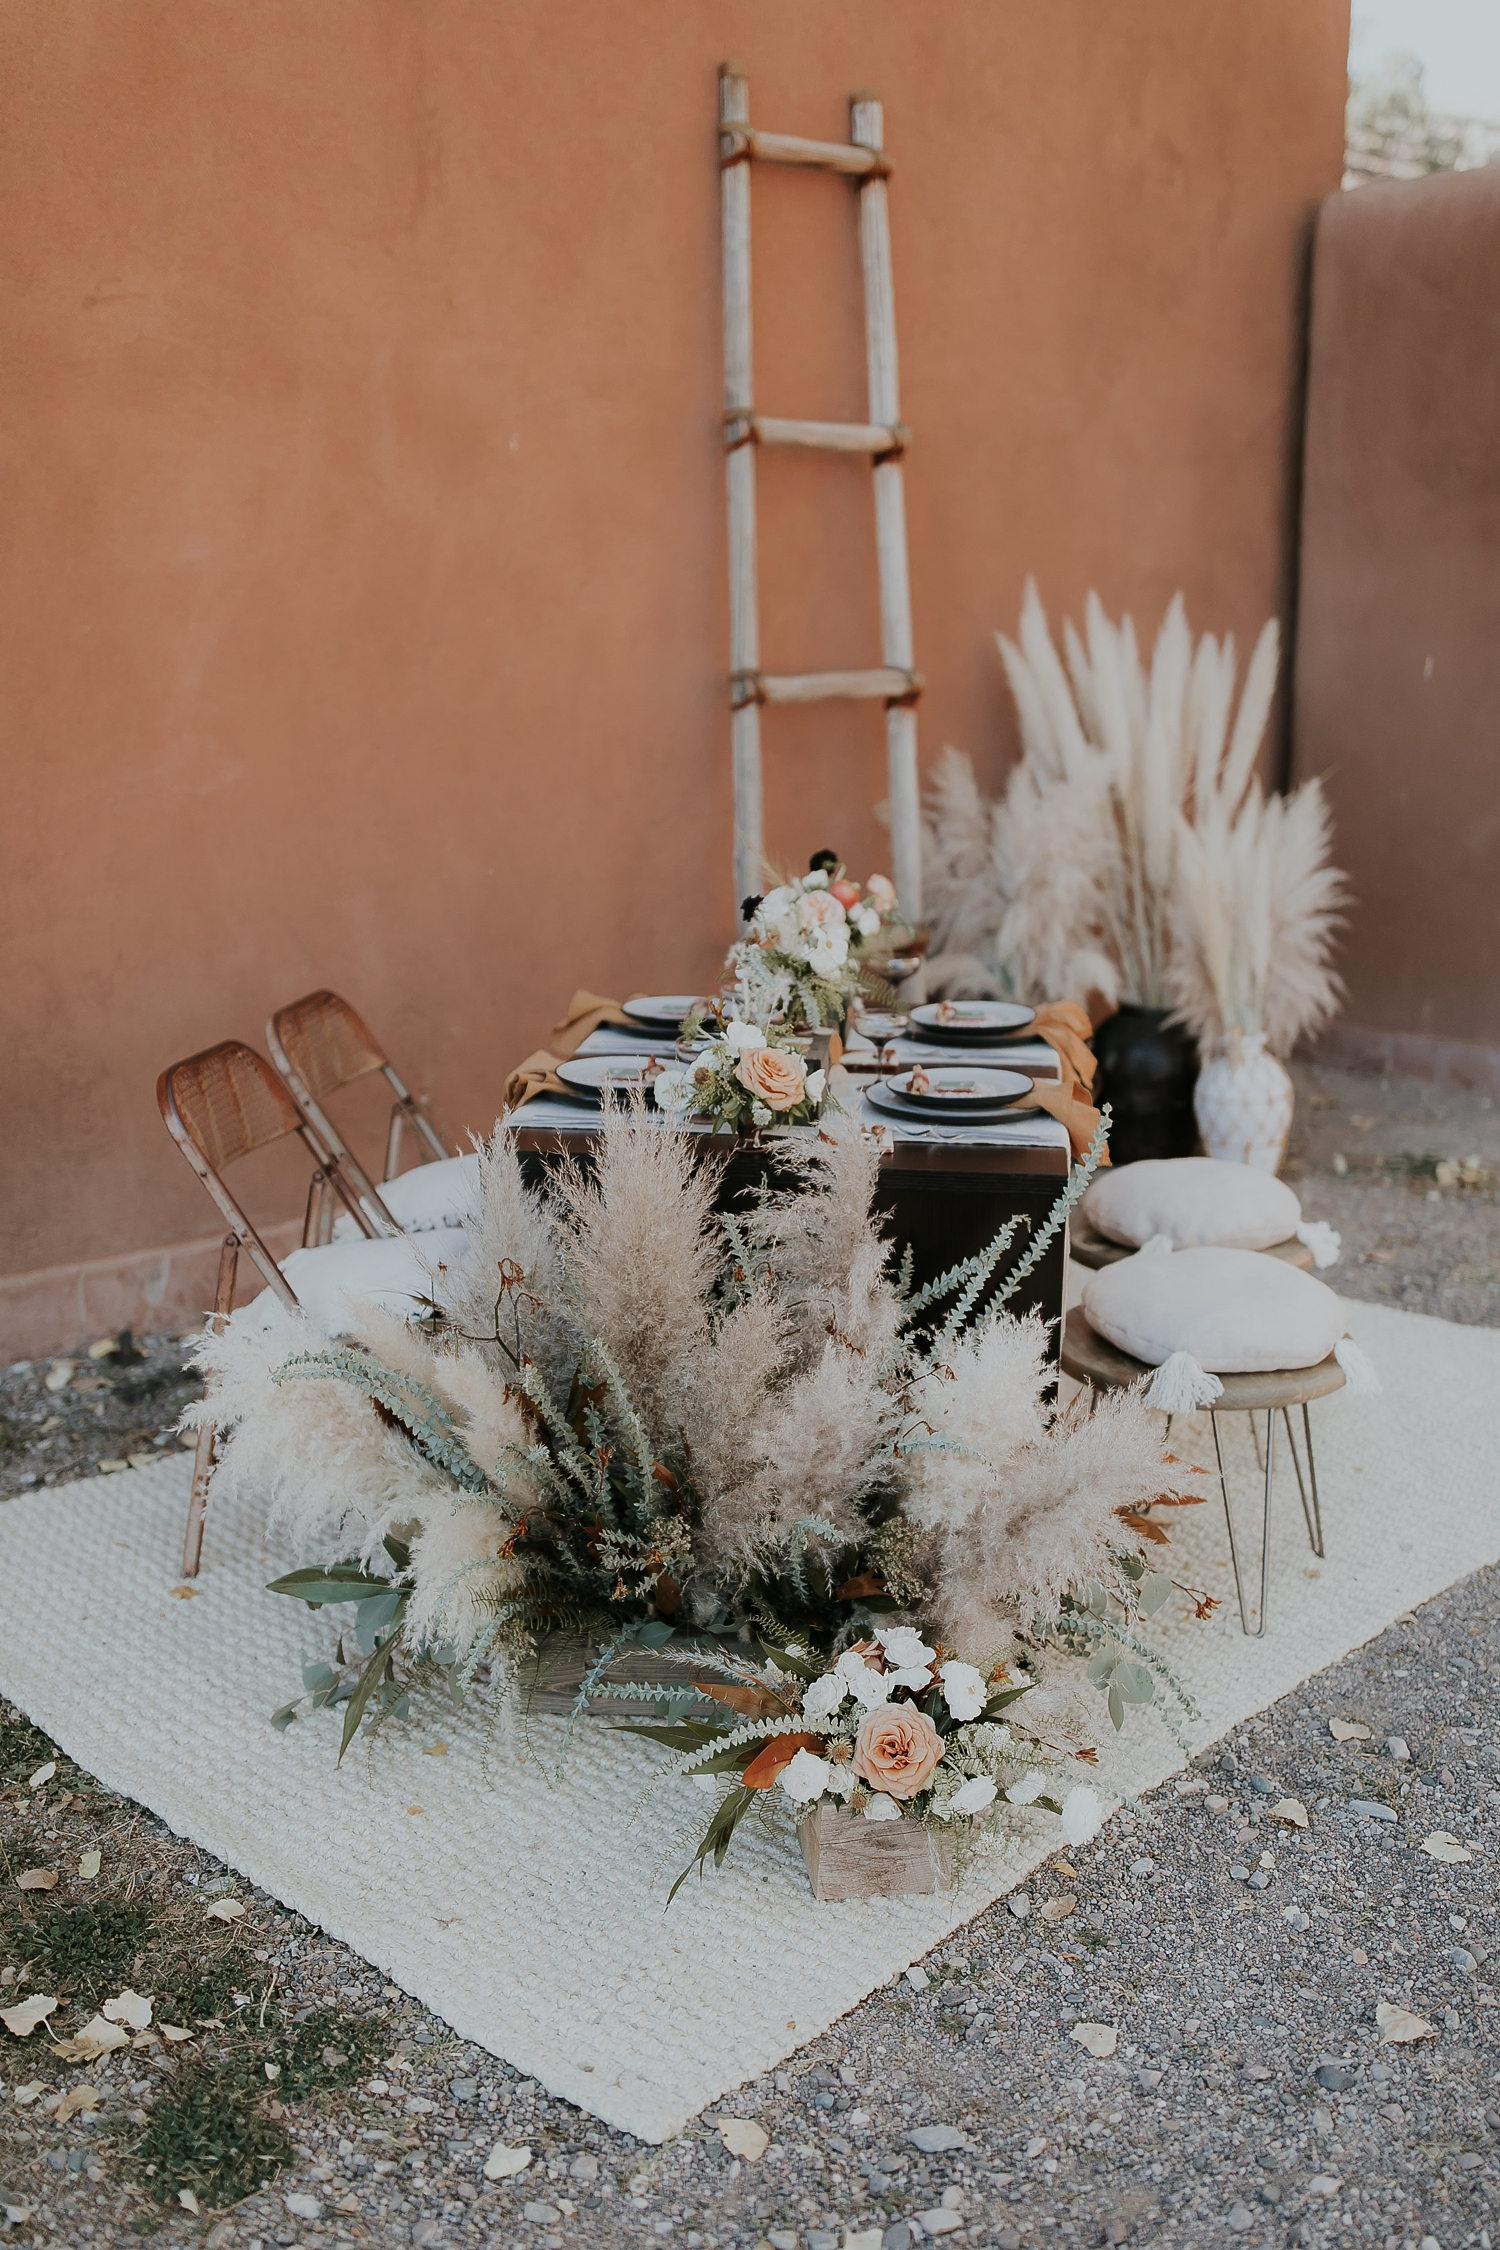 Alicia+lucia+photography+-+albuquerque+wedding+photographer+-+santa+fe+wedding+photography+-+new+mexico+wedding+photographer+-+new+mexico+ghost+ranch+wedding+-+styled+wedding+shoot_0001.jpg